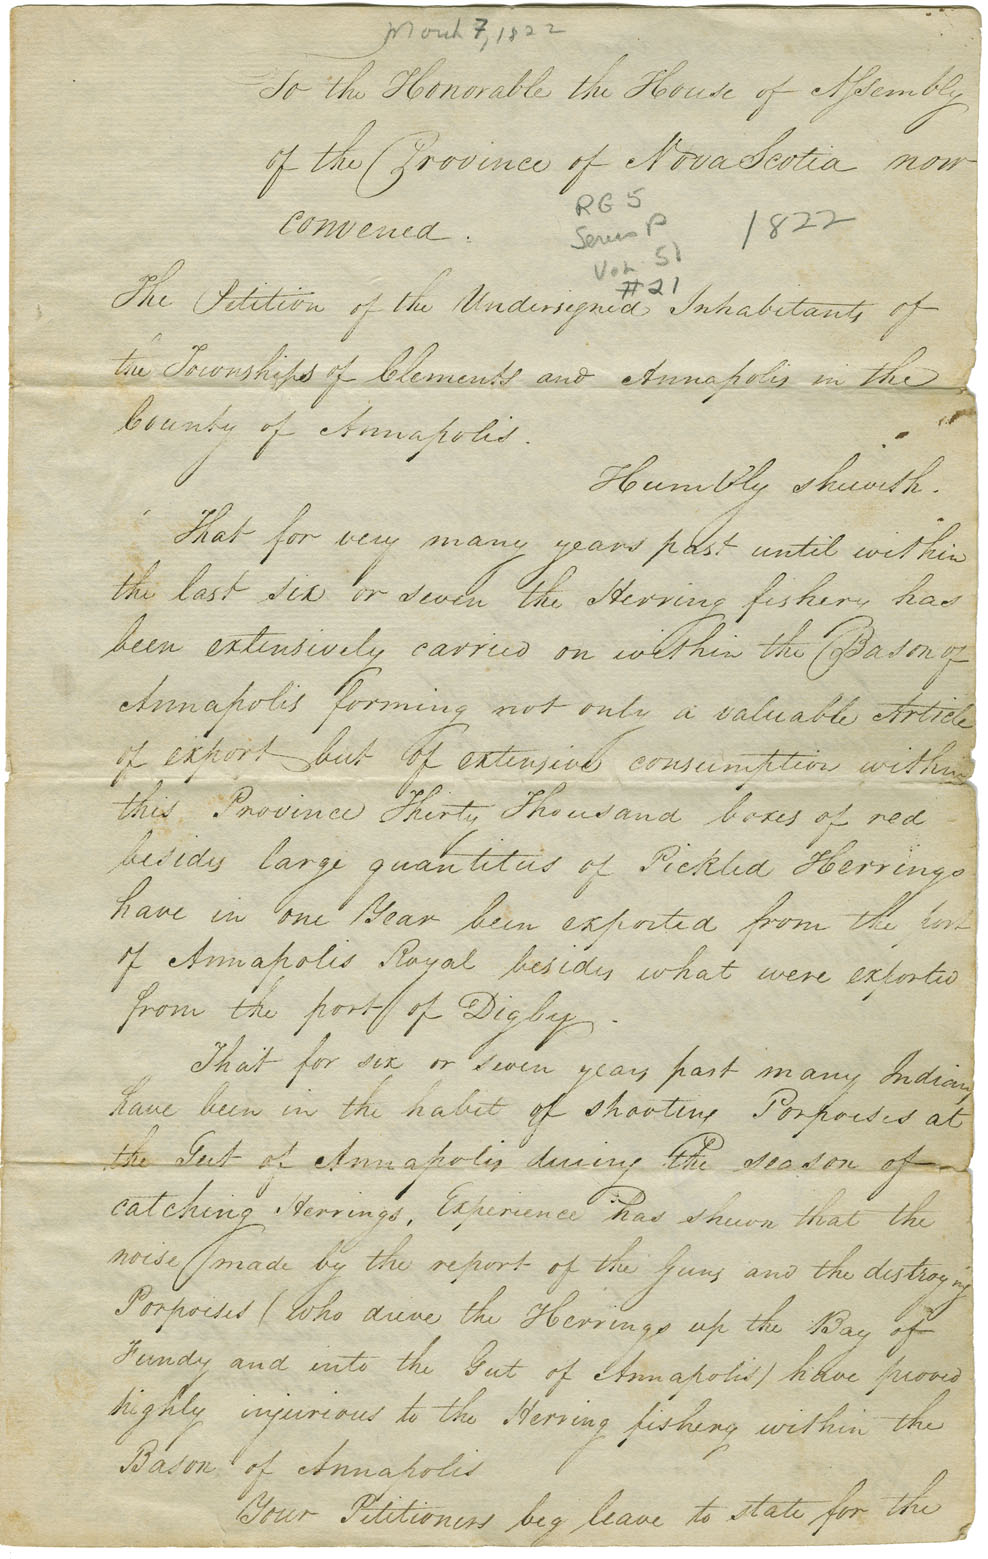 Petition from the inhabitants of Clements and Annapolis requesting measures be taken to prevent the firing of guns by the Mi'kmaq and the killing of porpoises at the Annapolis Gut during the herring fishing season.